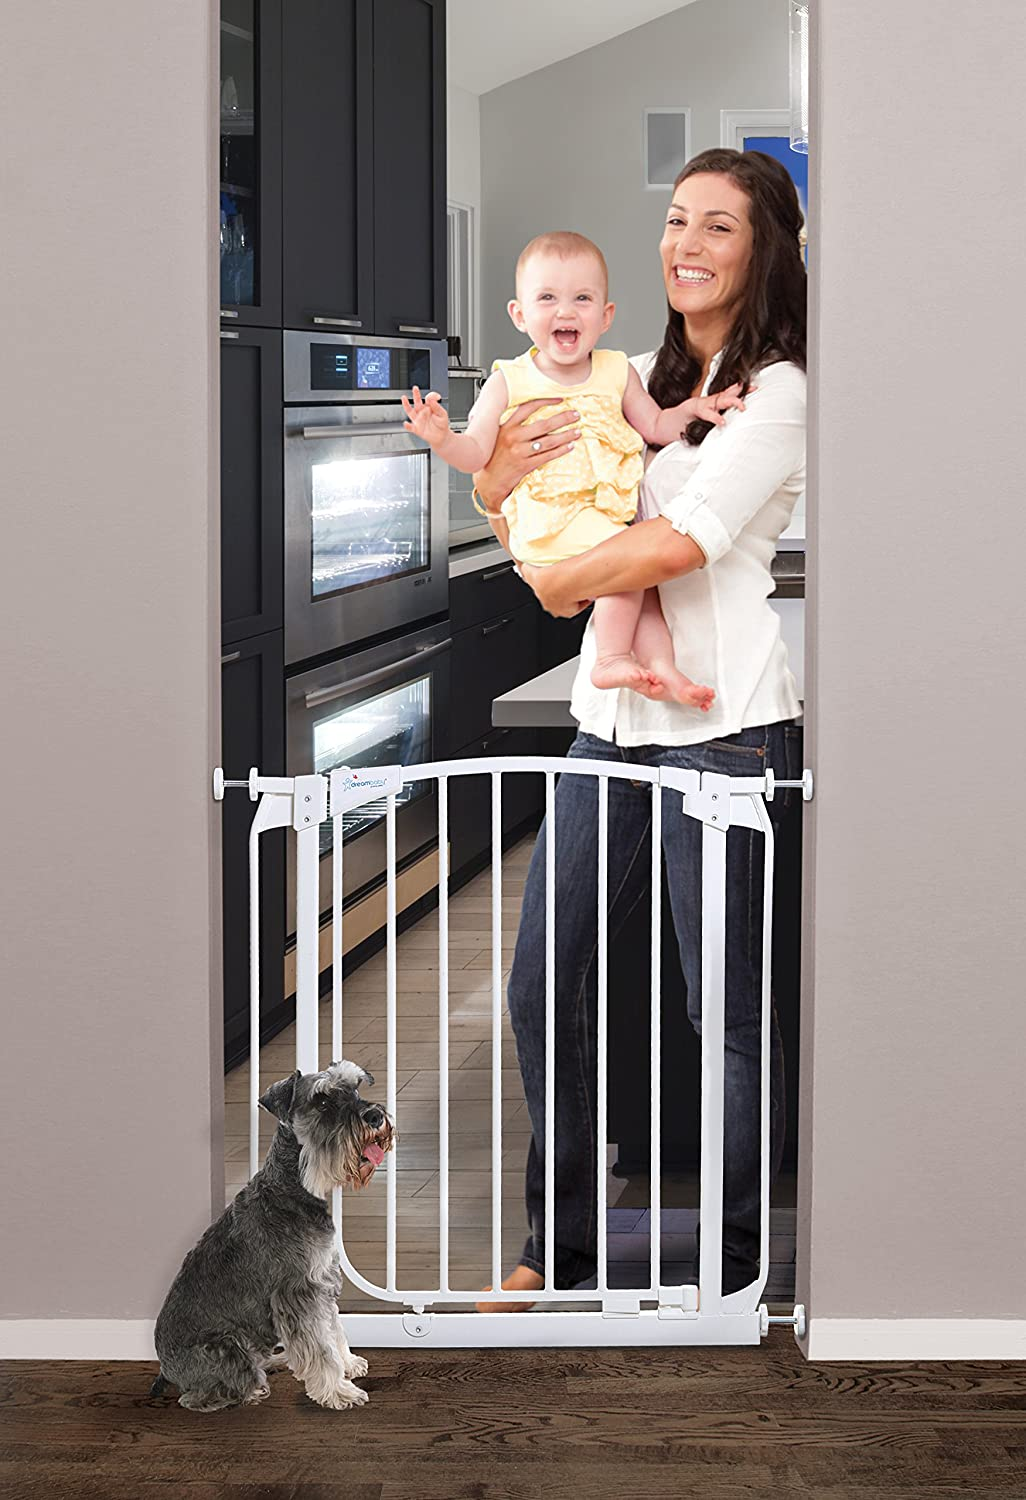 Dreambaby Chelsea 28-35.5in Auto Close Security Gate w Stay Open Feature- White